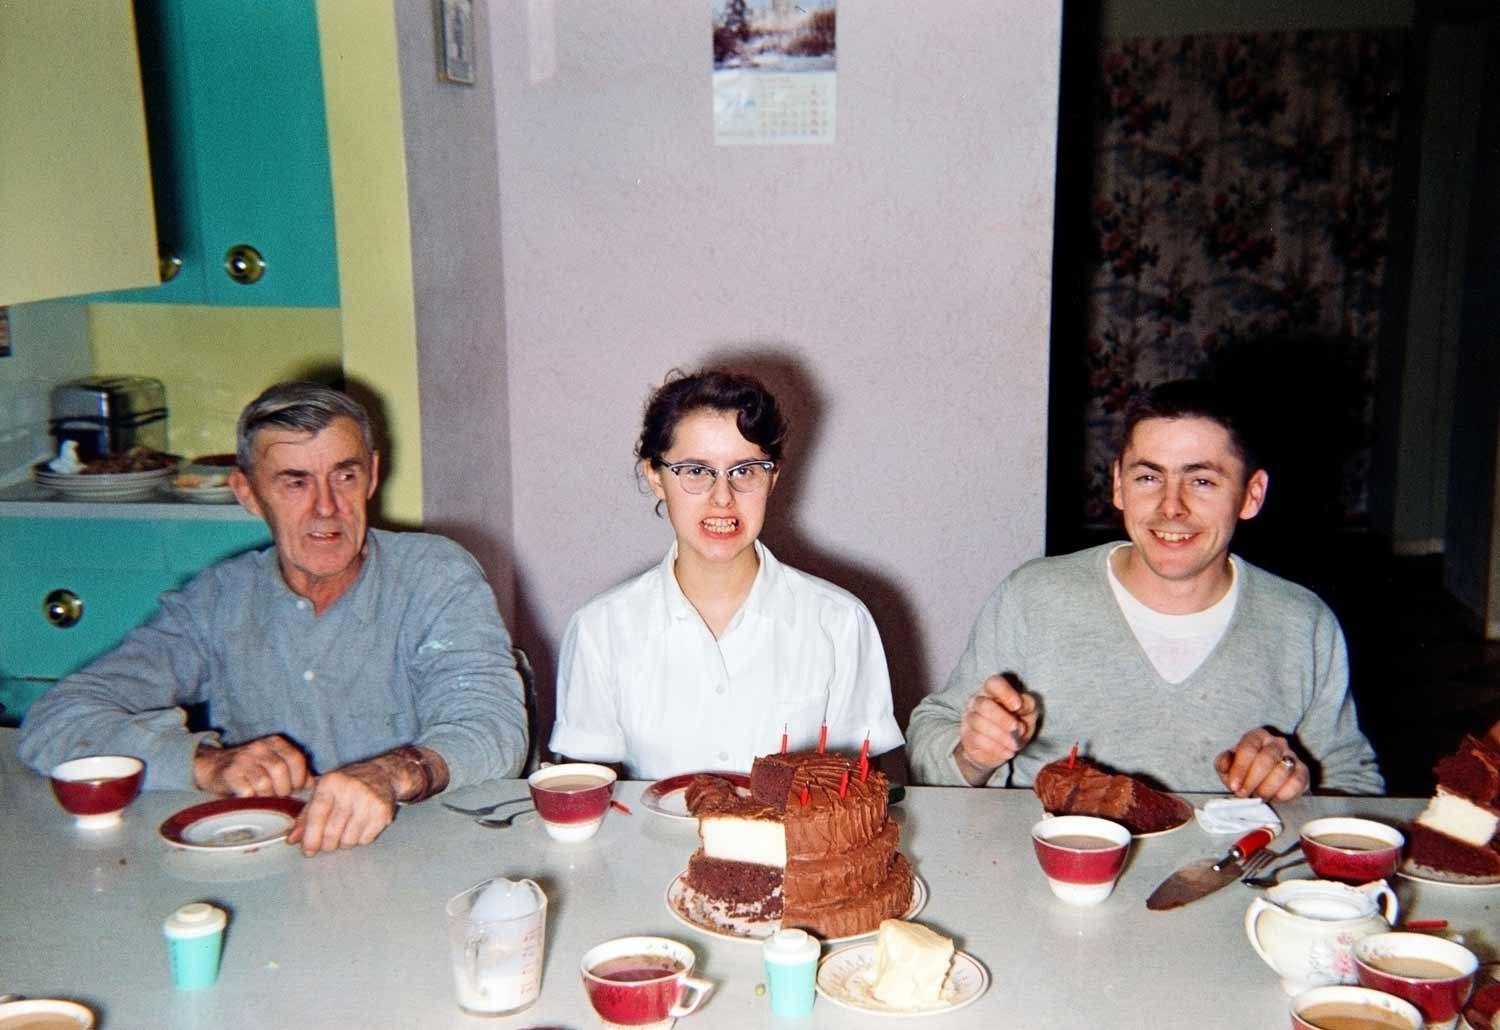 Some family members enjoy a slice of the towering cake.